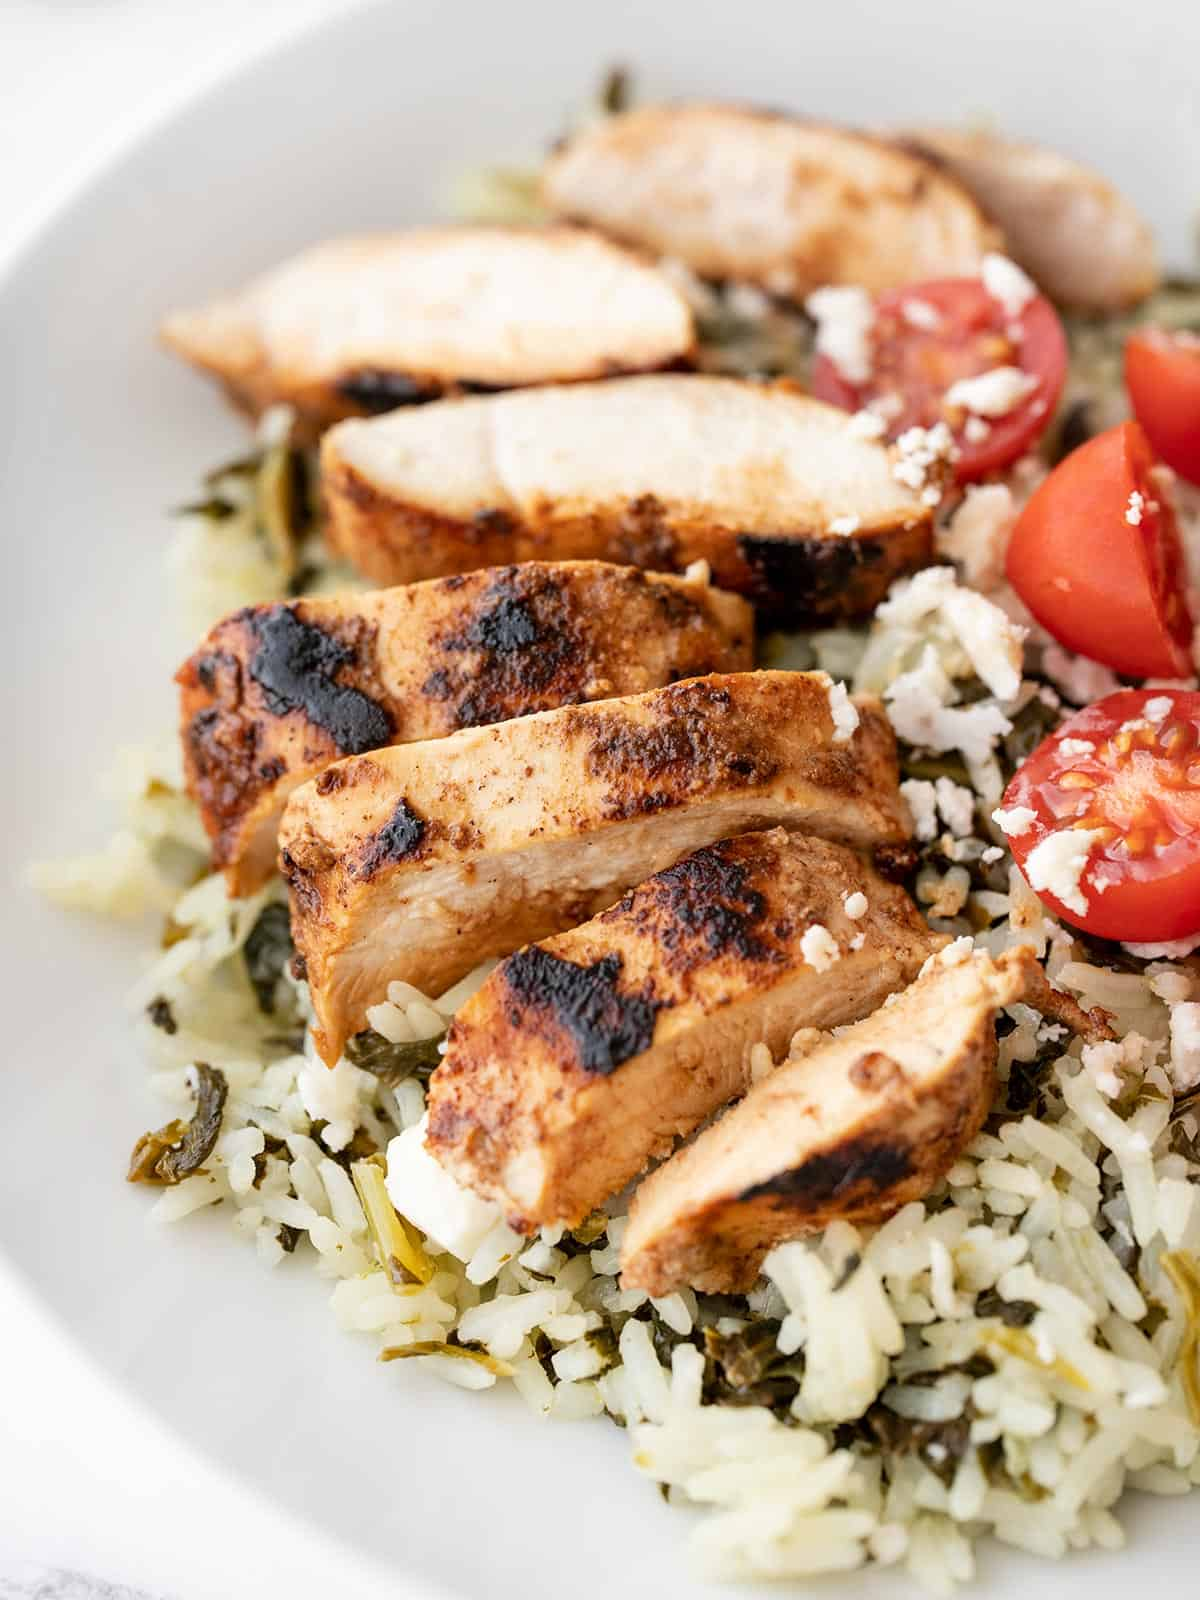 Sliced yogurt marinated chicken on a bed of spinach rice with tomatoes